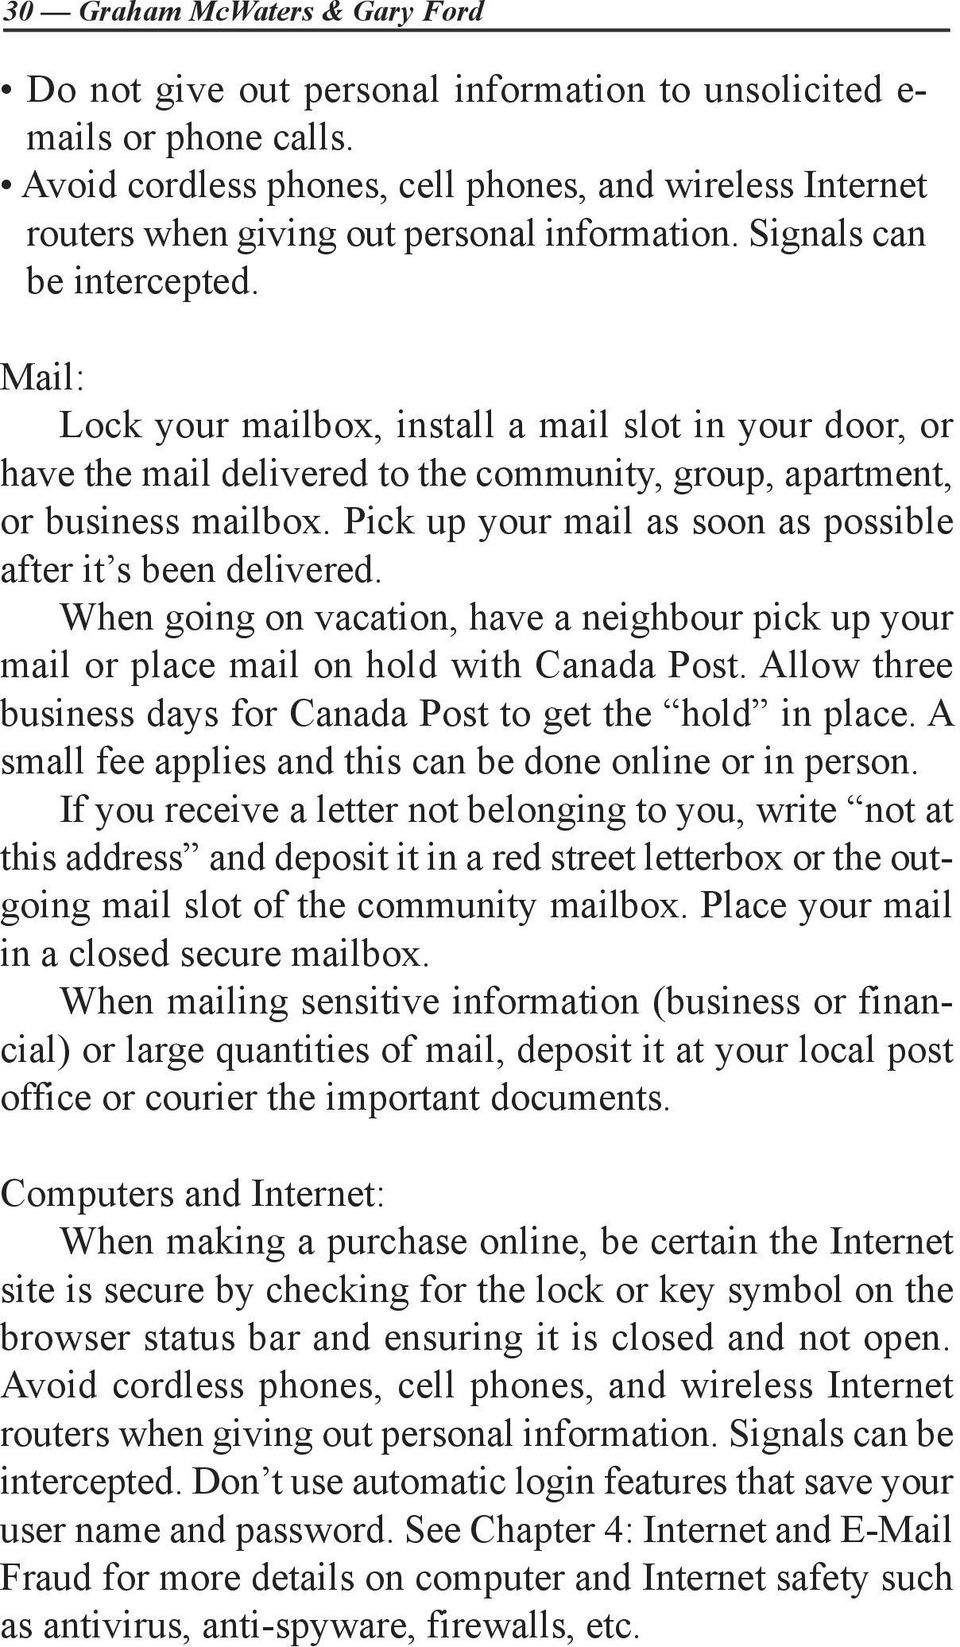 Mail: Lock your mailbox, install a mail slot in your door, or have the mail delivered to the community, group, apartment, or business mailbox.